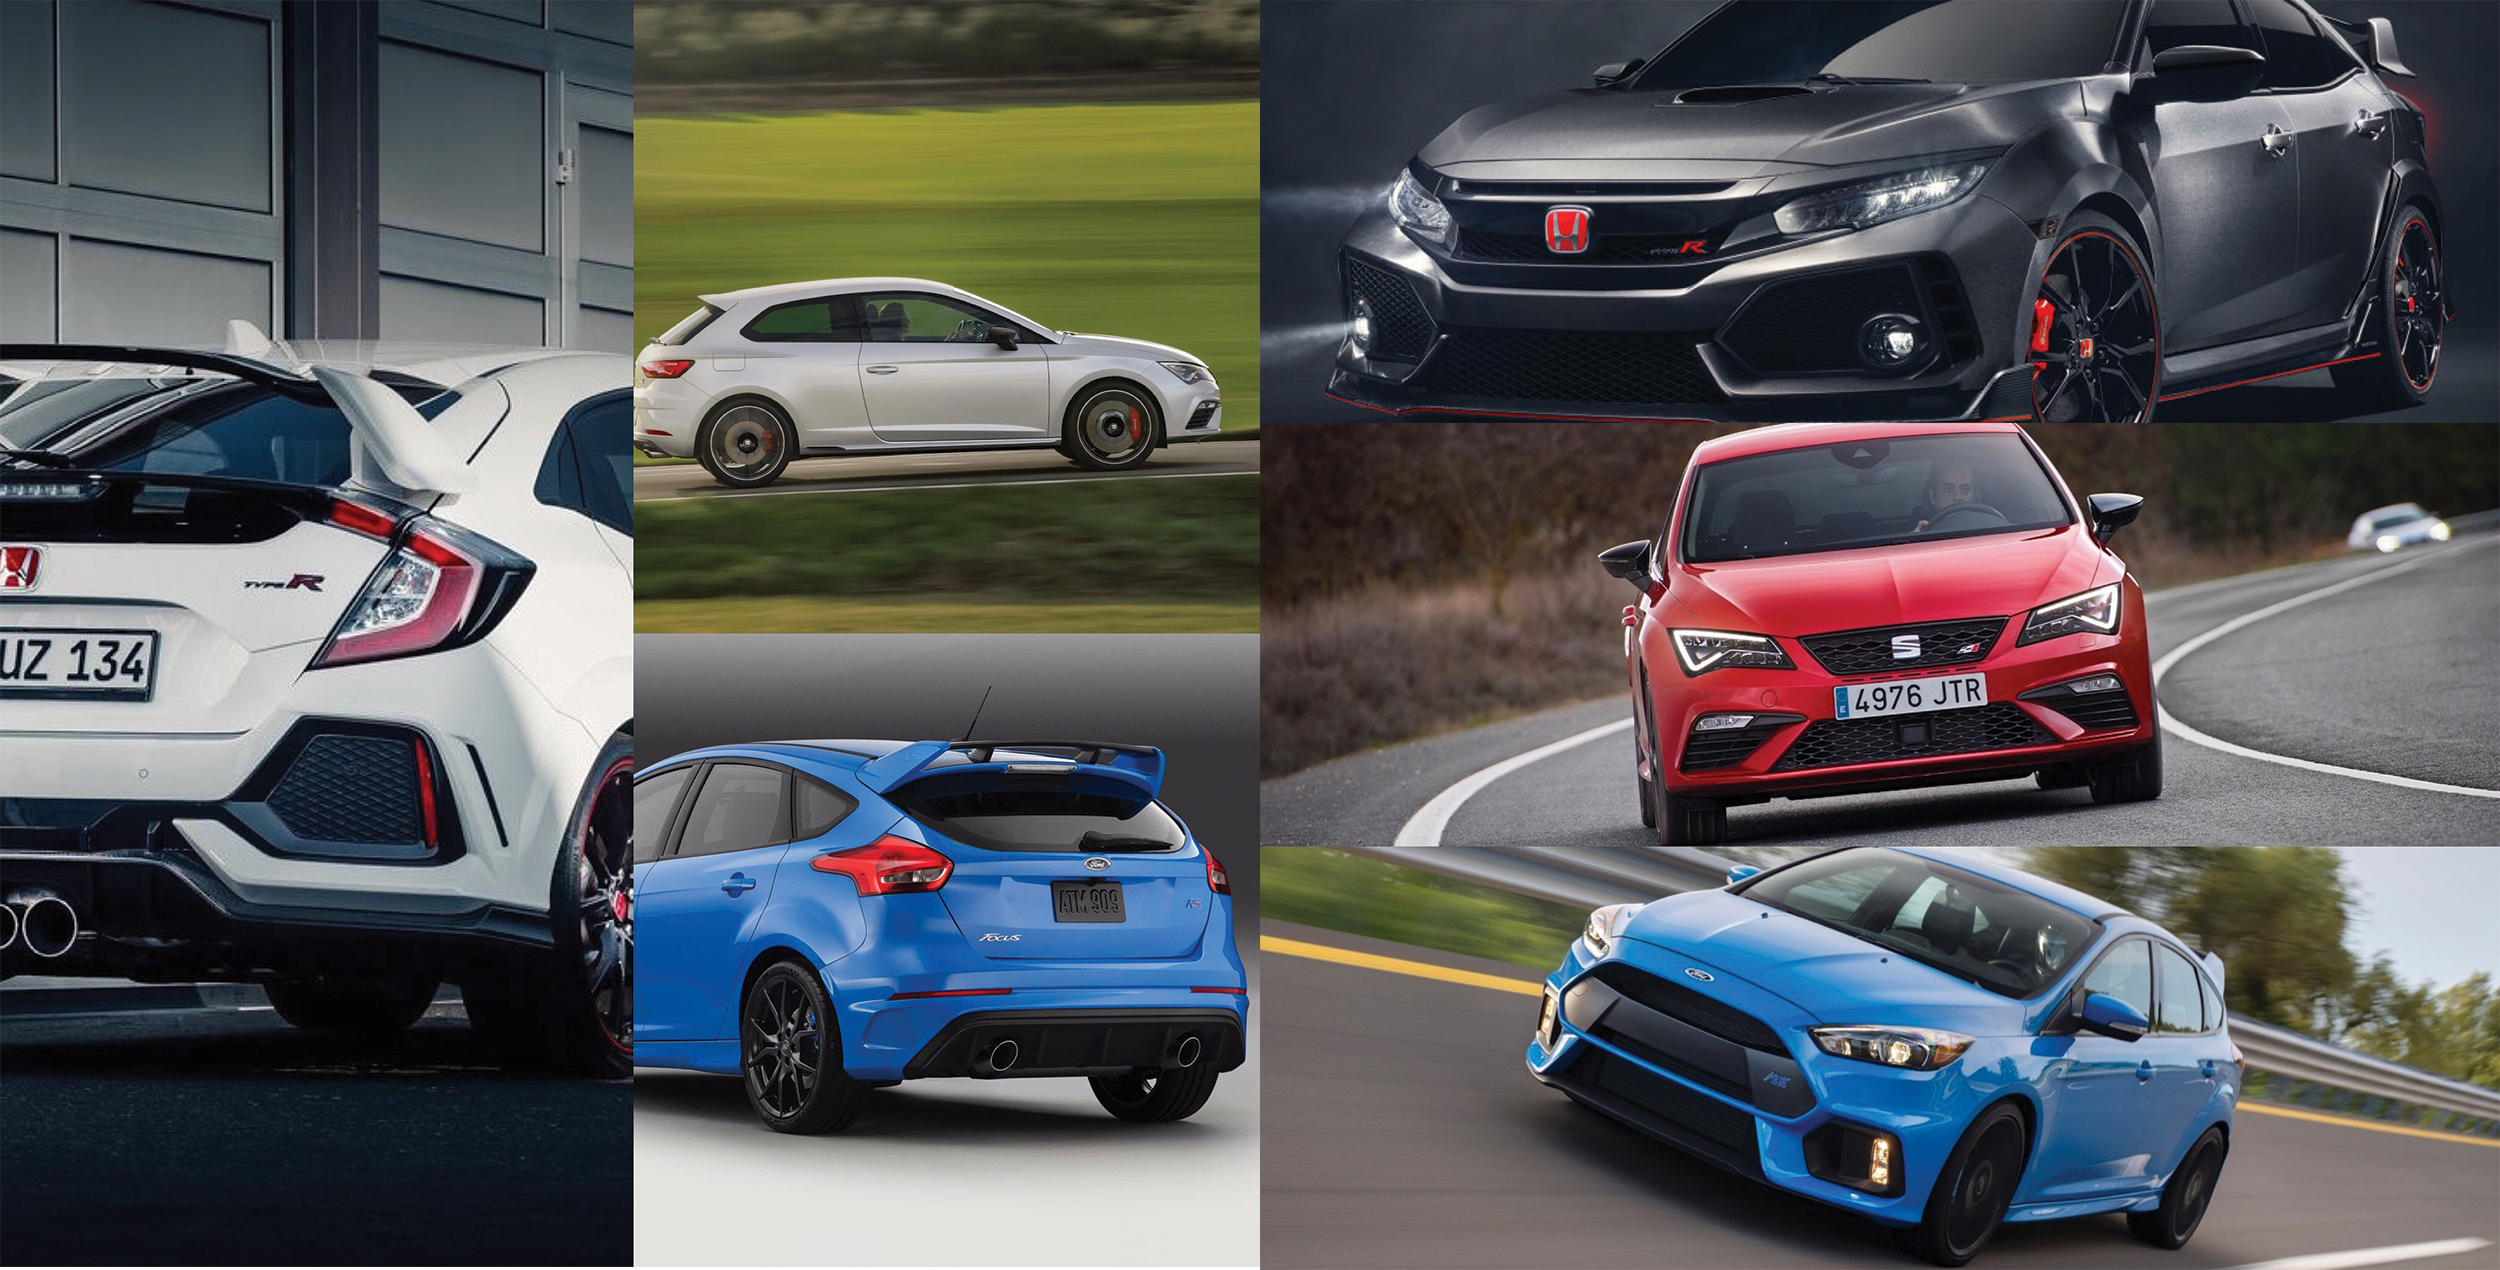 Honda Civic Type R vs. Ford Focus RS vs. SEAT León Cupra: Analizamos a los hot-hatches del momento